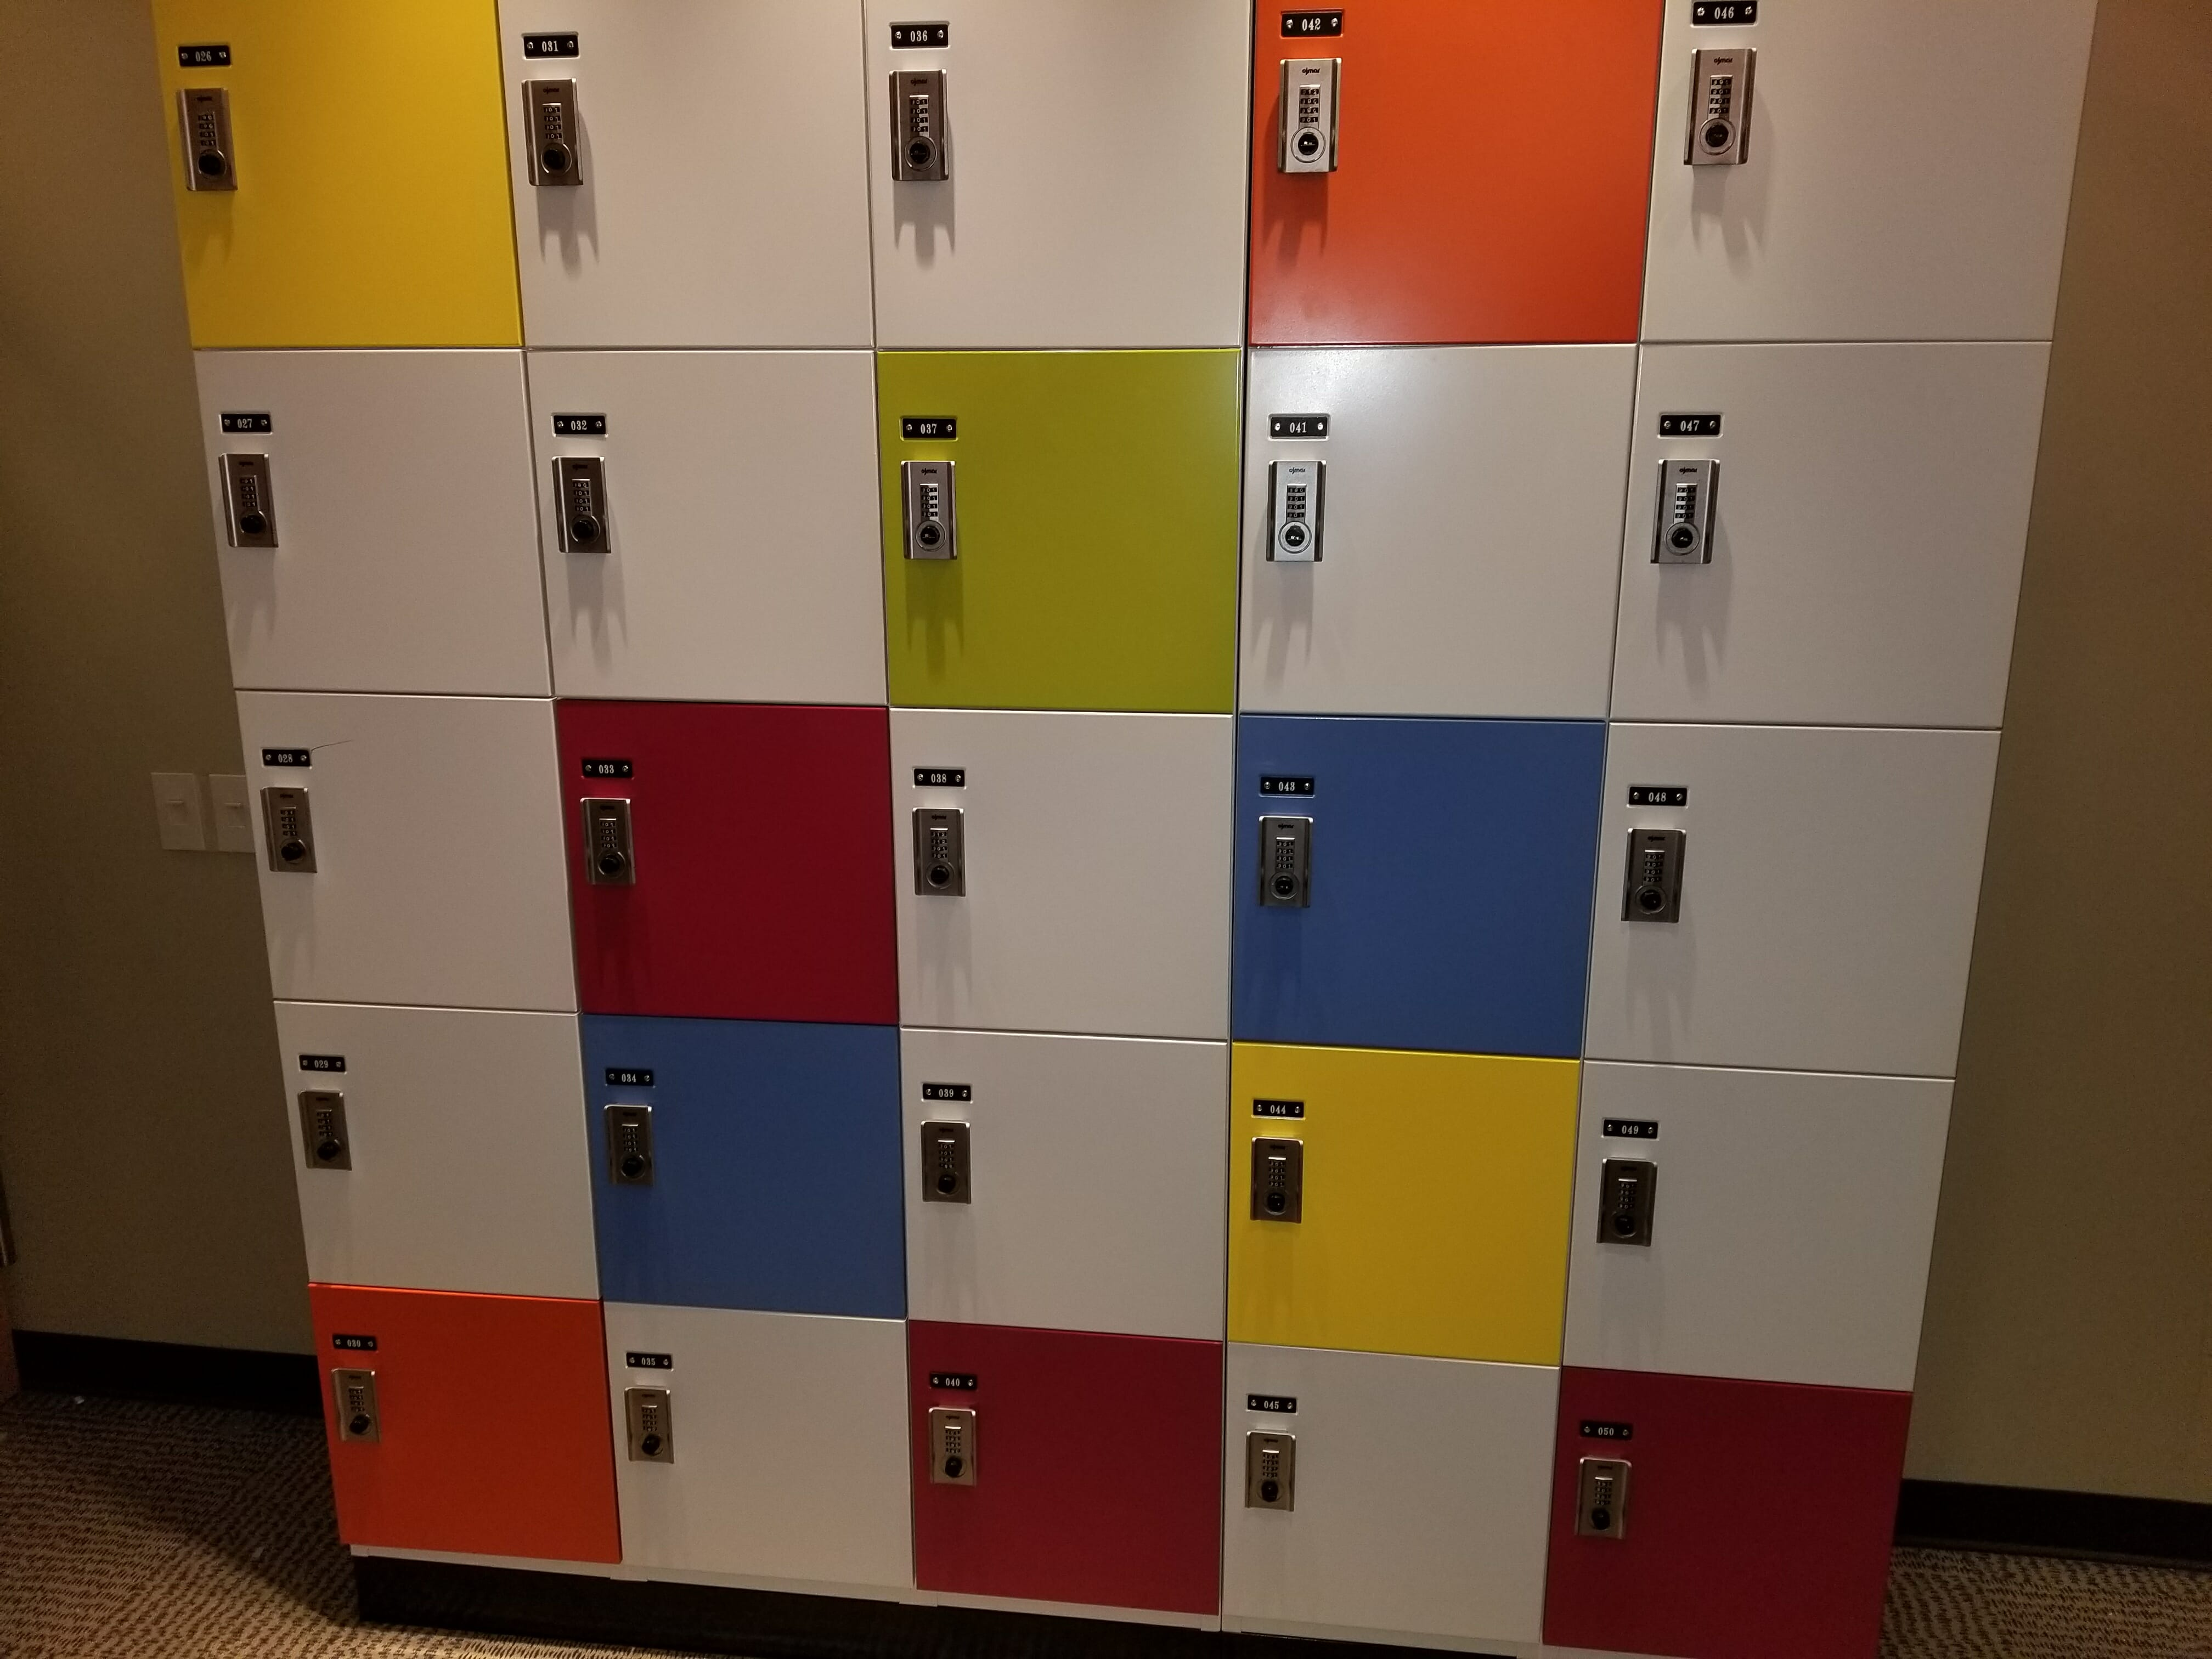 Random style day use cabinets with multi color doors